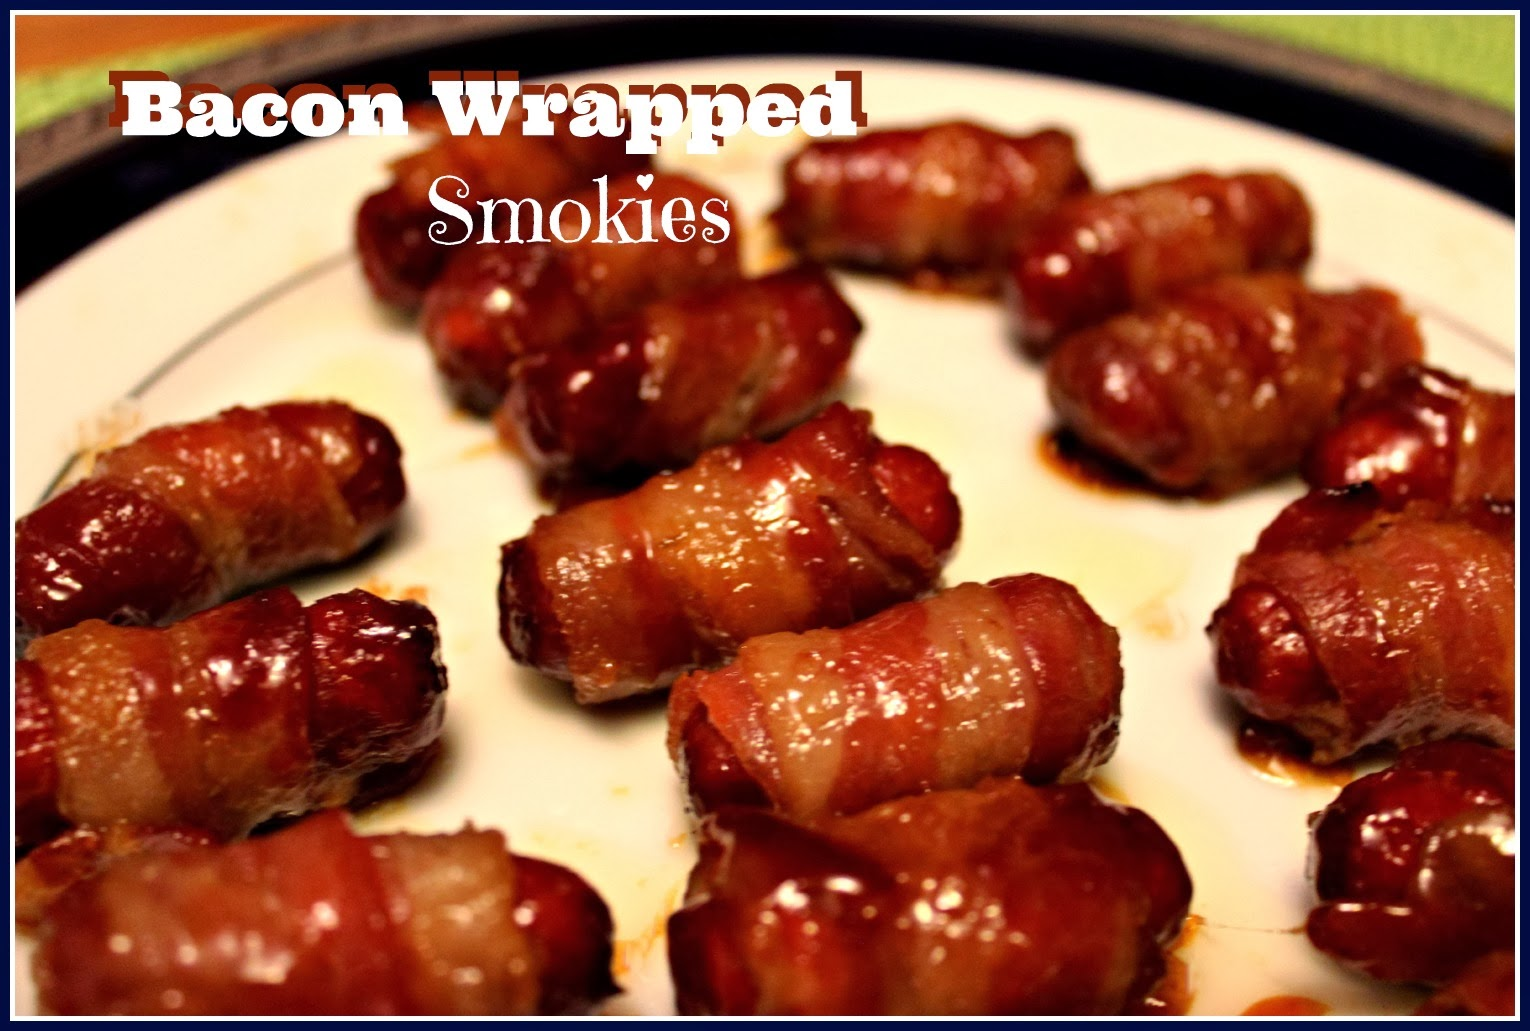 ... bacon wrapped meatloaf bacon wrapped pineapple bacon wrapped smokies 4